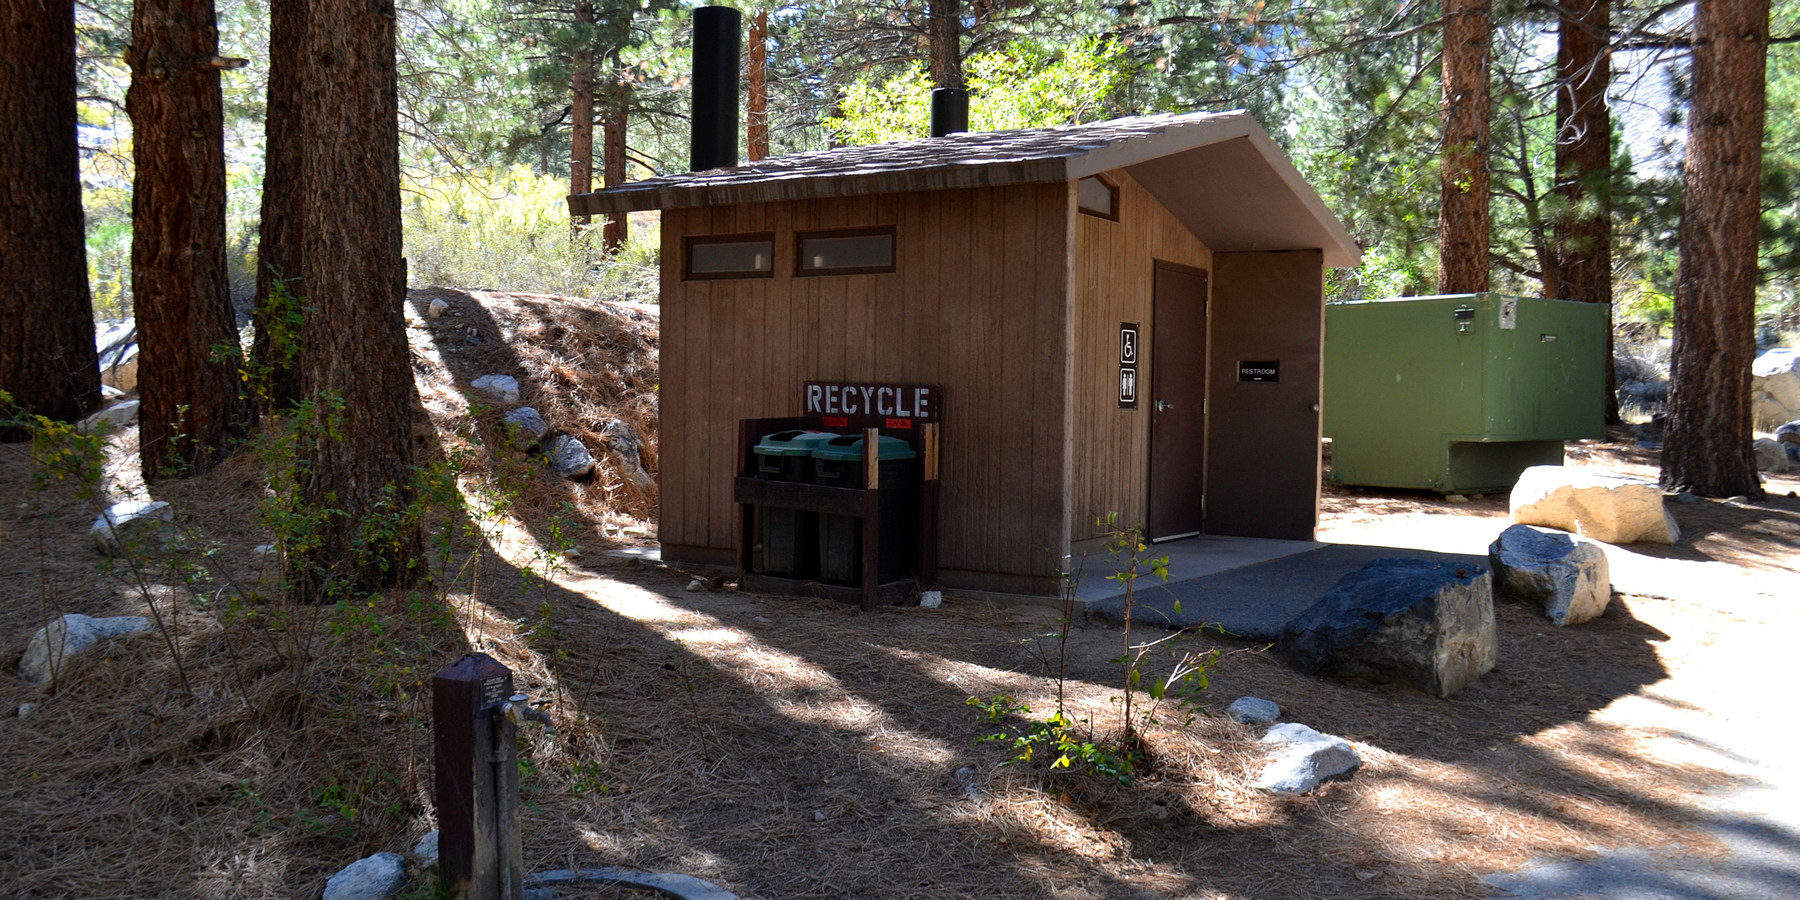 big pine chat sites Big pine creek campground, surrounded by sprawling meadows and towering trees, is perfectly situated in the scenic big pine canyon campsites are perched along the cool, fish-filled waters of big pine creek.